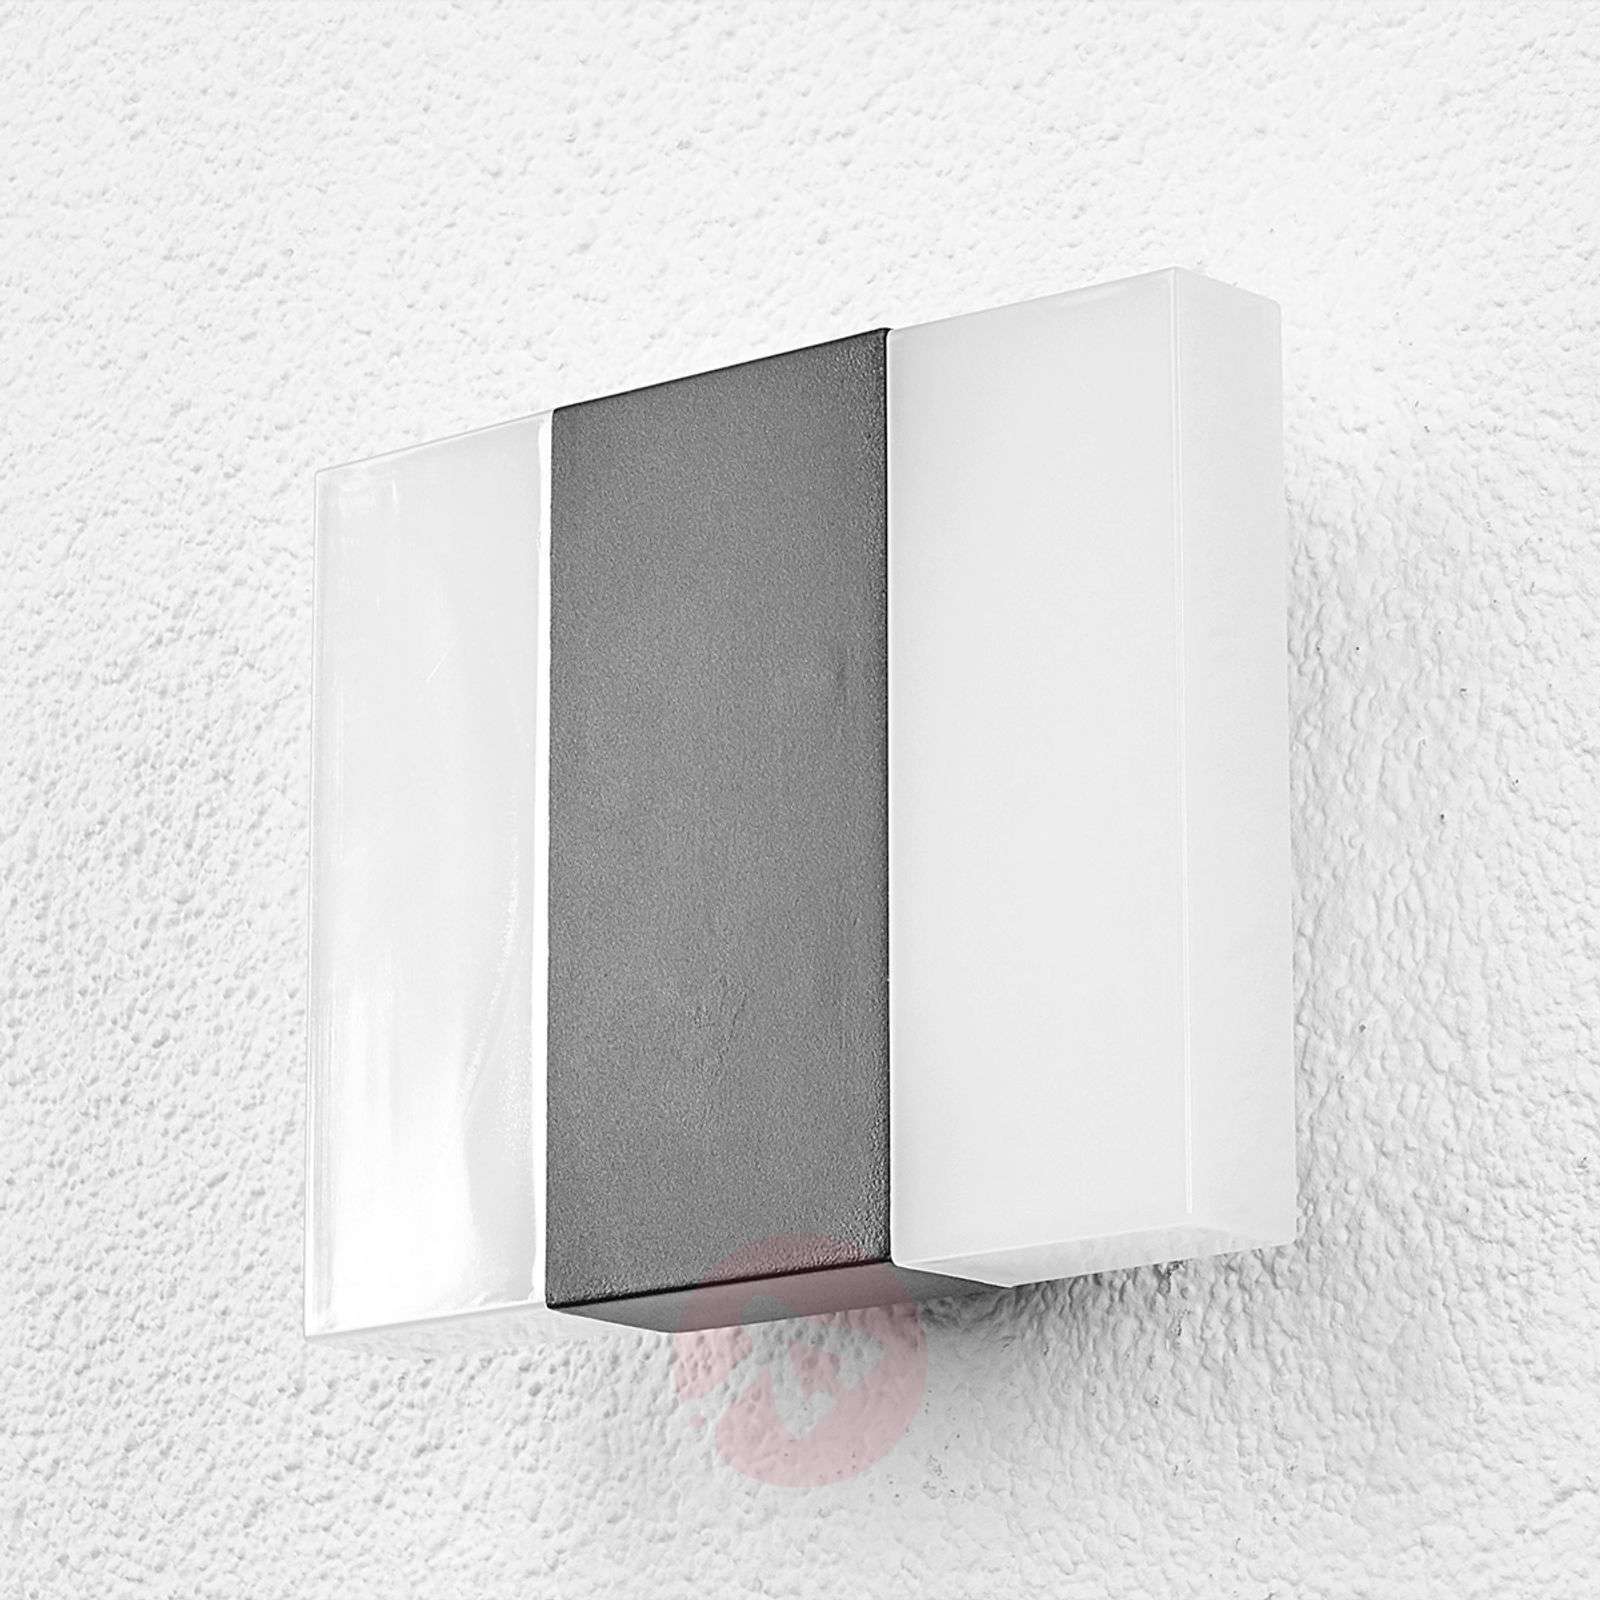 Börje LED outdoor wall light in a square shape-9647003-01